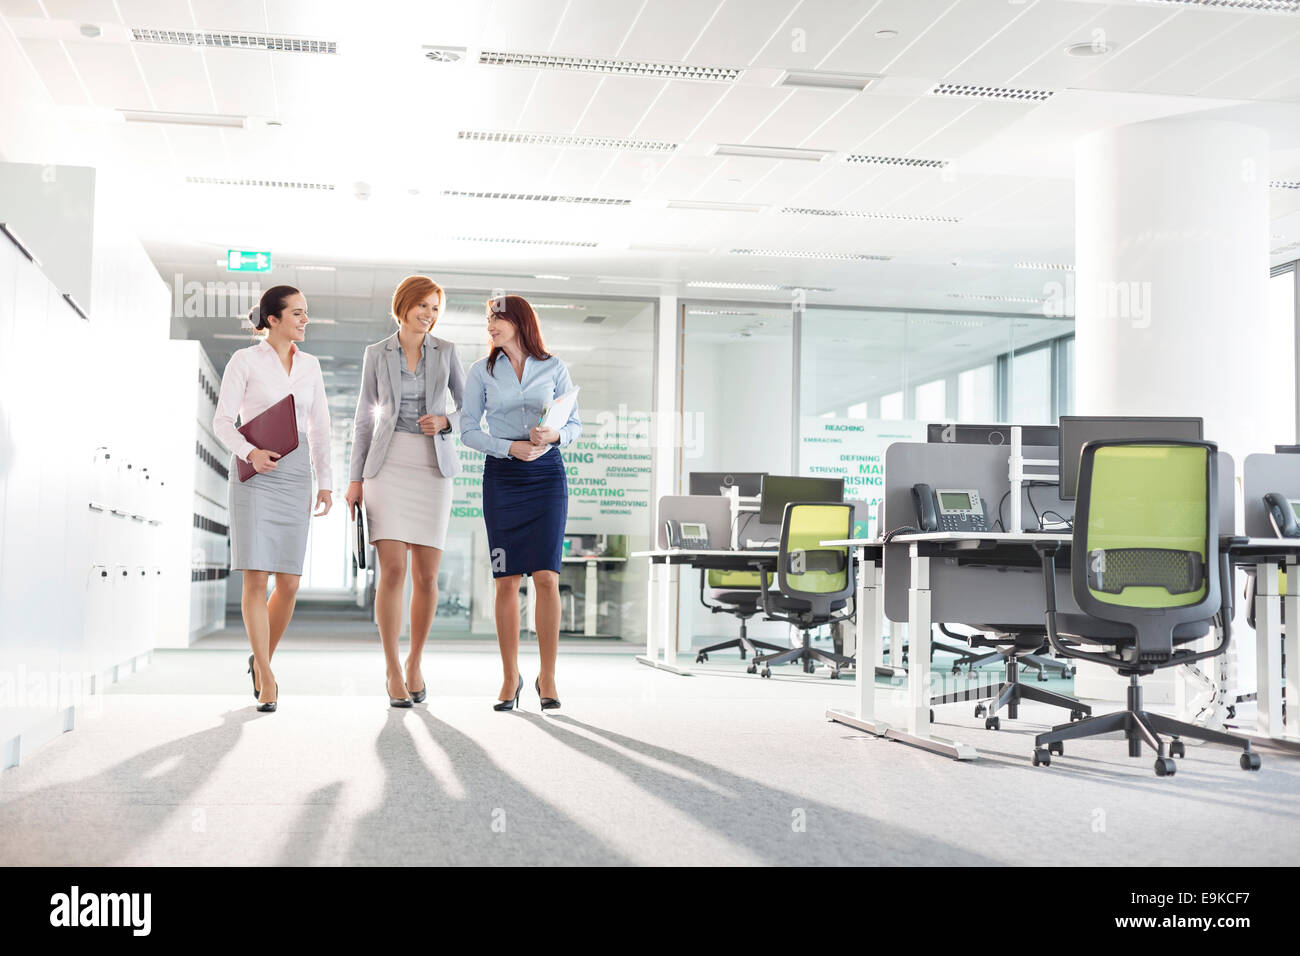 Full-length of businesswomen with file folders walking in office - Stock Image